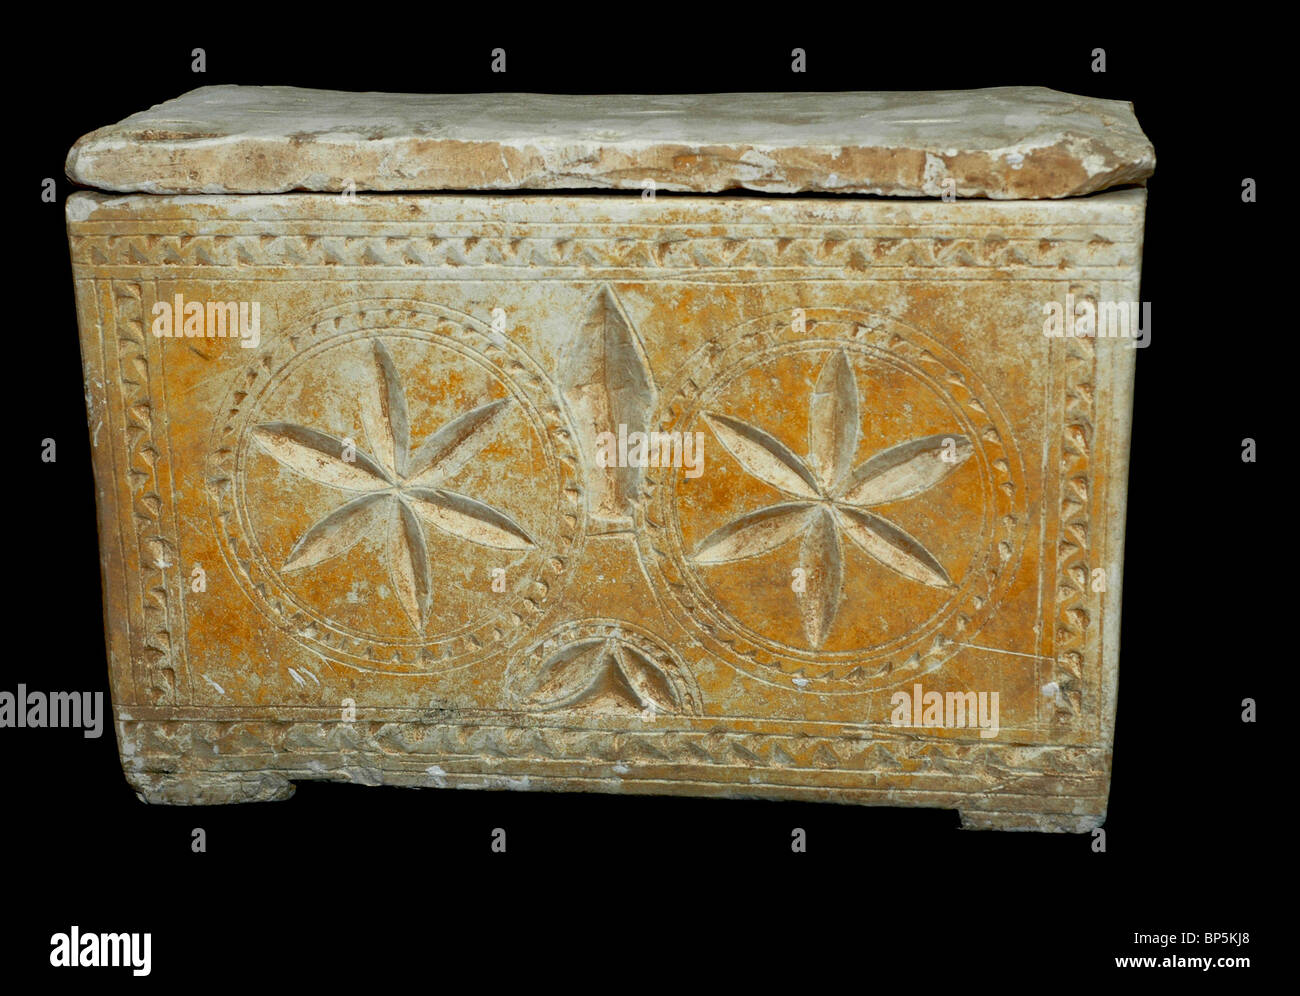 5267. Decorated ossuary from a rock carved Jewish family tomb found near Jerusalem, dating C. 1st. C. AD - Stock Image